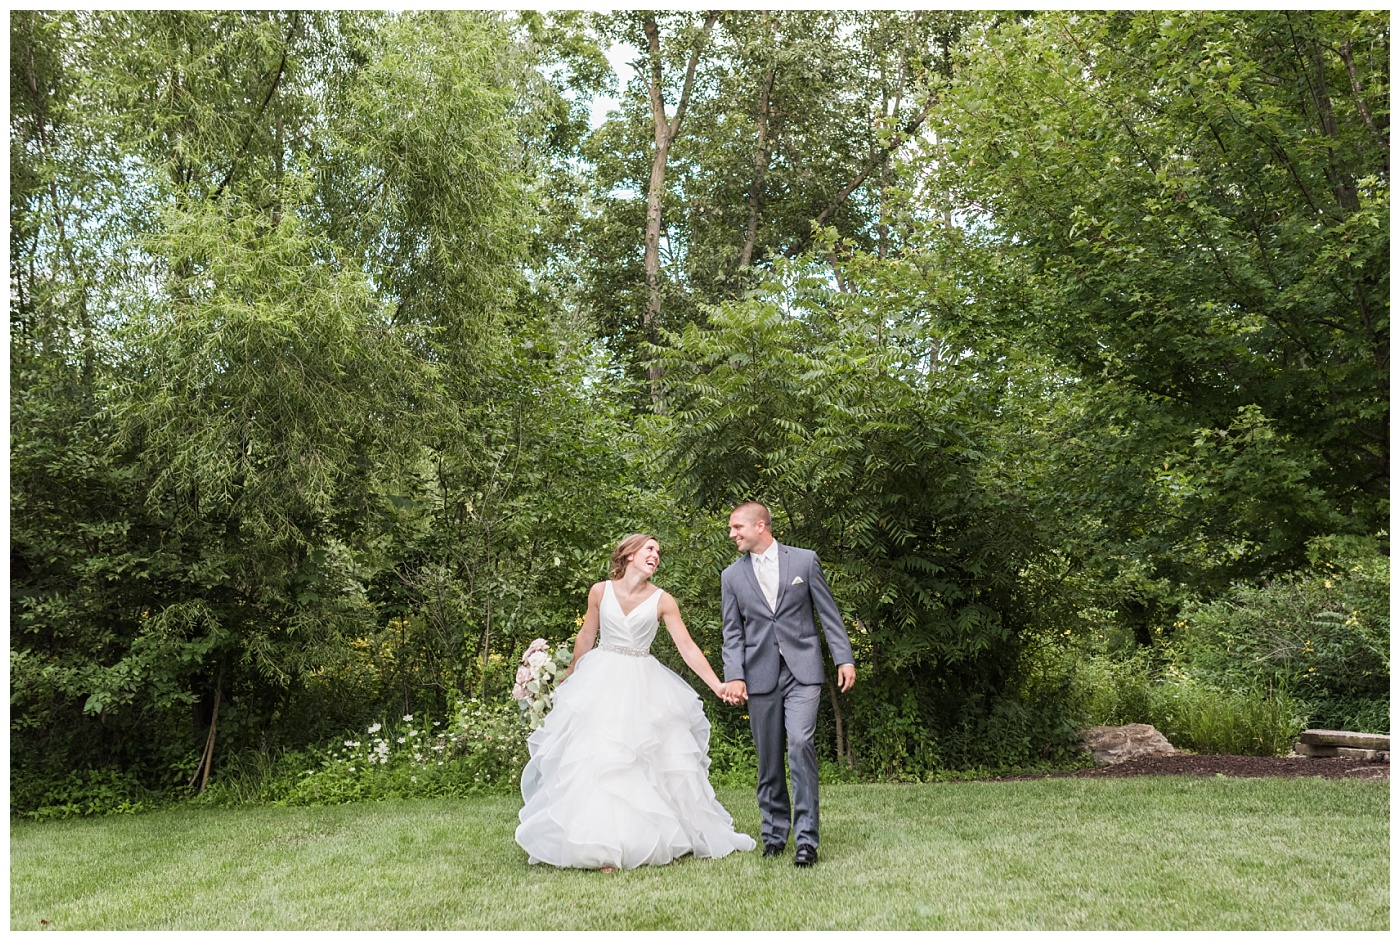 Stephanie Marie Photography Newman Catholic Center Ceremony Bella Sala Reception Tiffin Iowa City Wedding Photographer Chelsey Justin Meyers_0044-1.jpg